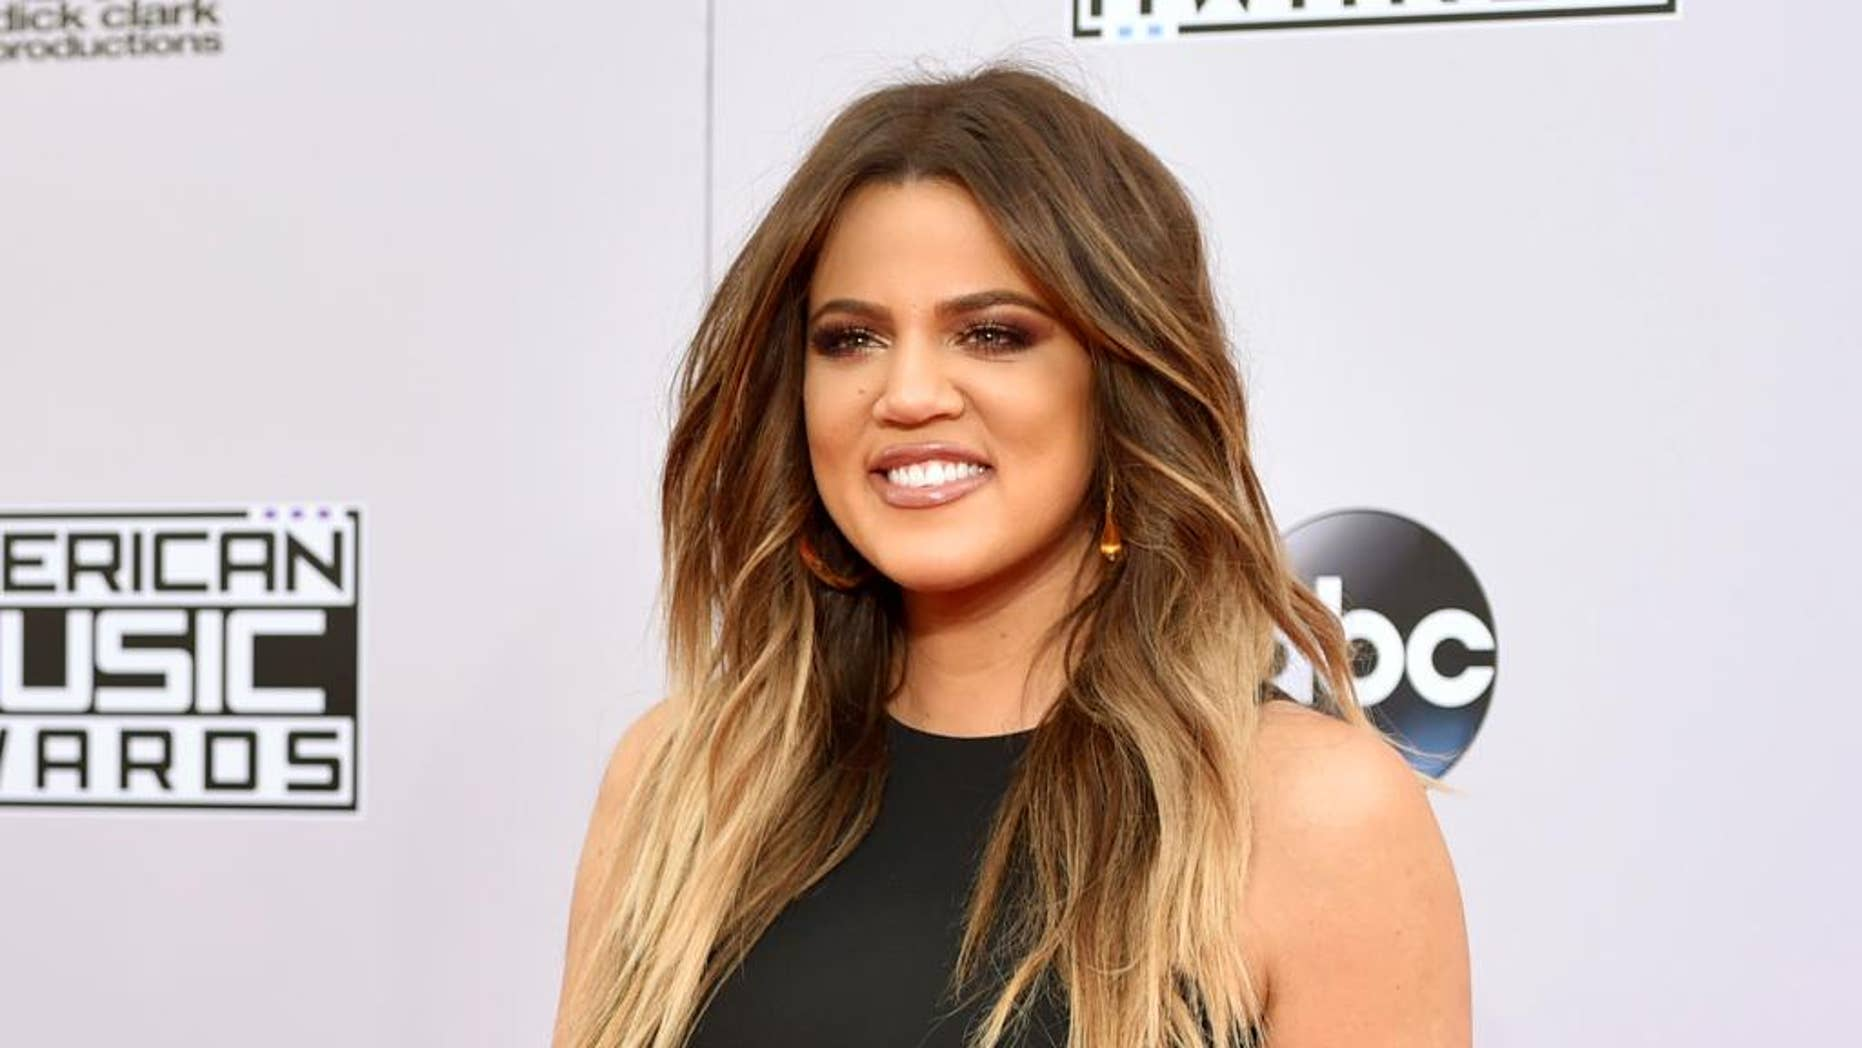 """FILE - In this Nov. 23, 2014 file photo, Khloe Kardashian arrives at the 42nd annual American Music Awards in Los Angeles. FYI, a division of A+E Networks, has ordered the new primetime, hybrid talk series """"Kocktails with Khloe"""" from Pilgrim Studios. (Photo by John Shearer/Invision/AP, File)"""